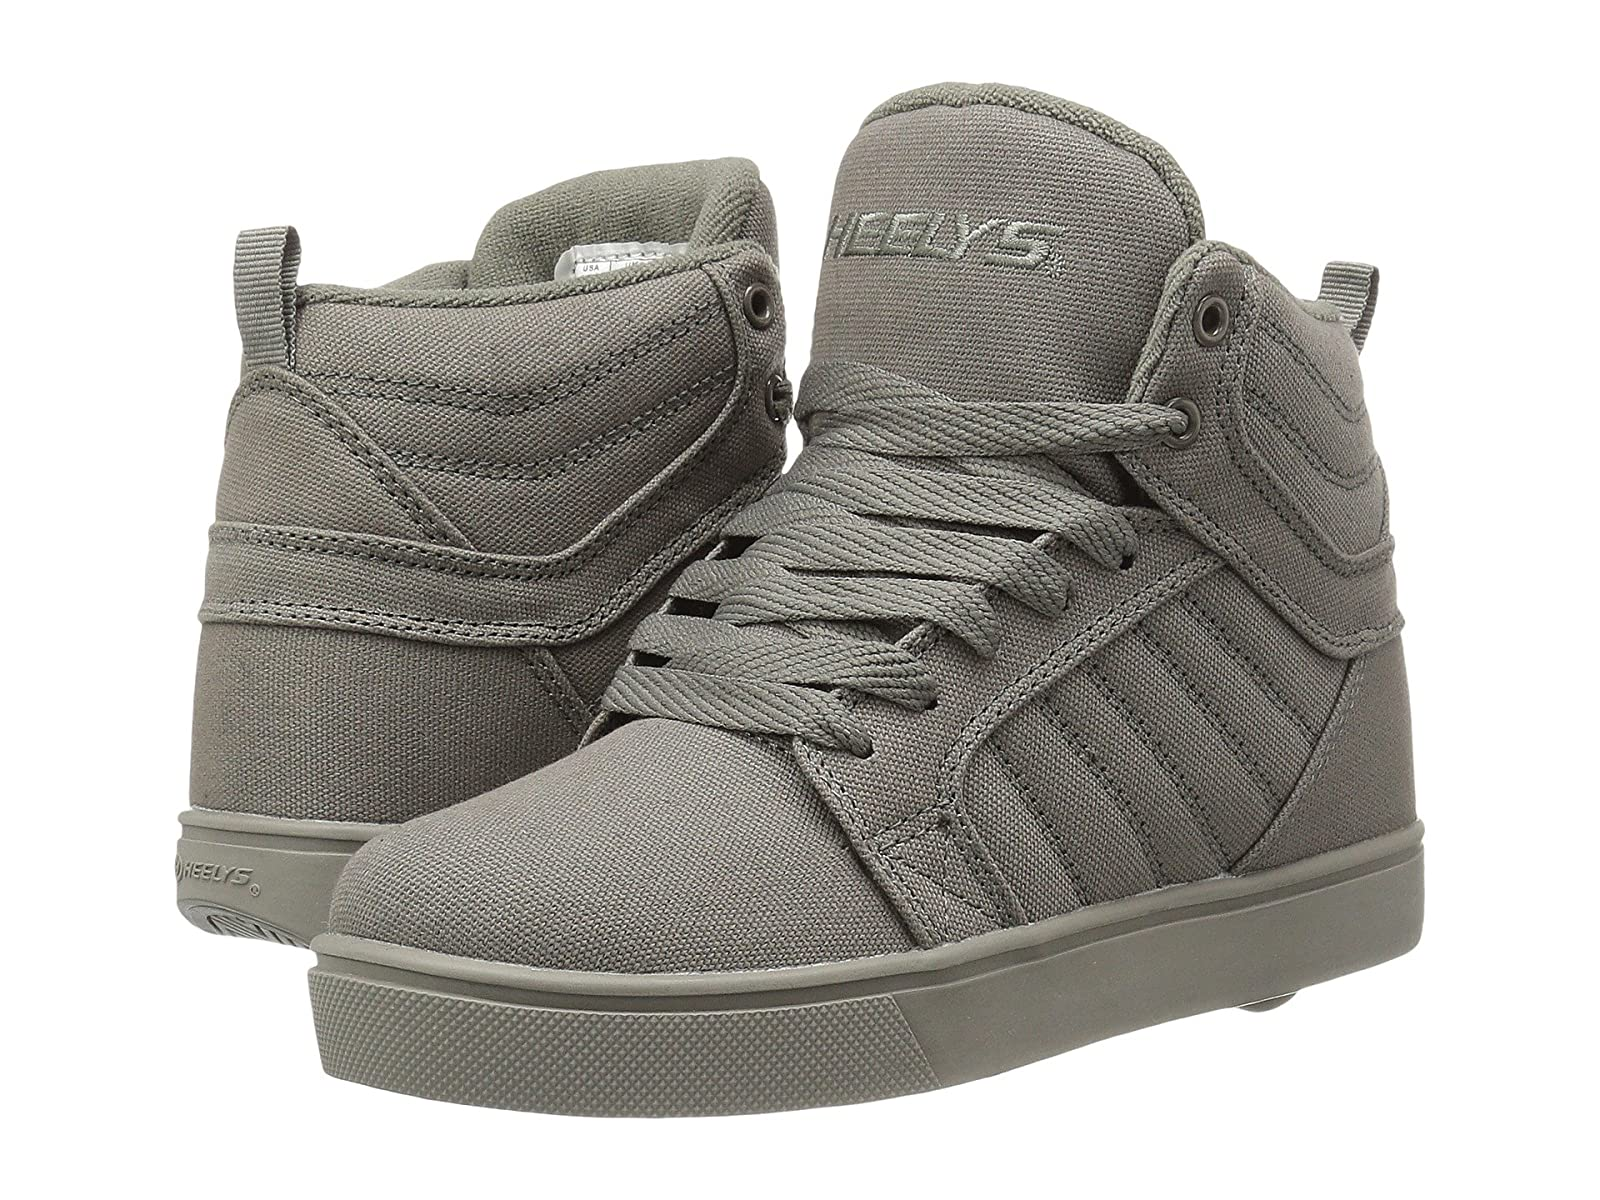 Heelys Uptown (Little Kid/Big Kid/Adult)Cheap and distinctive eye-catching shoes